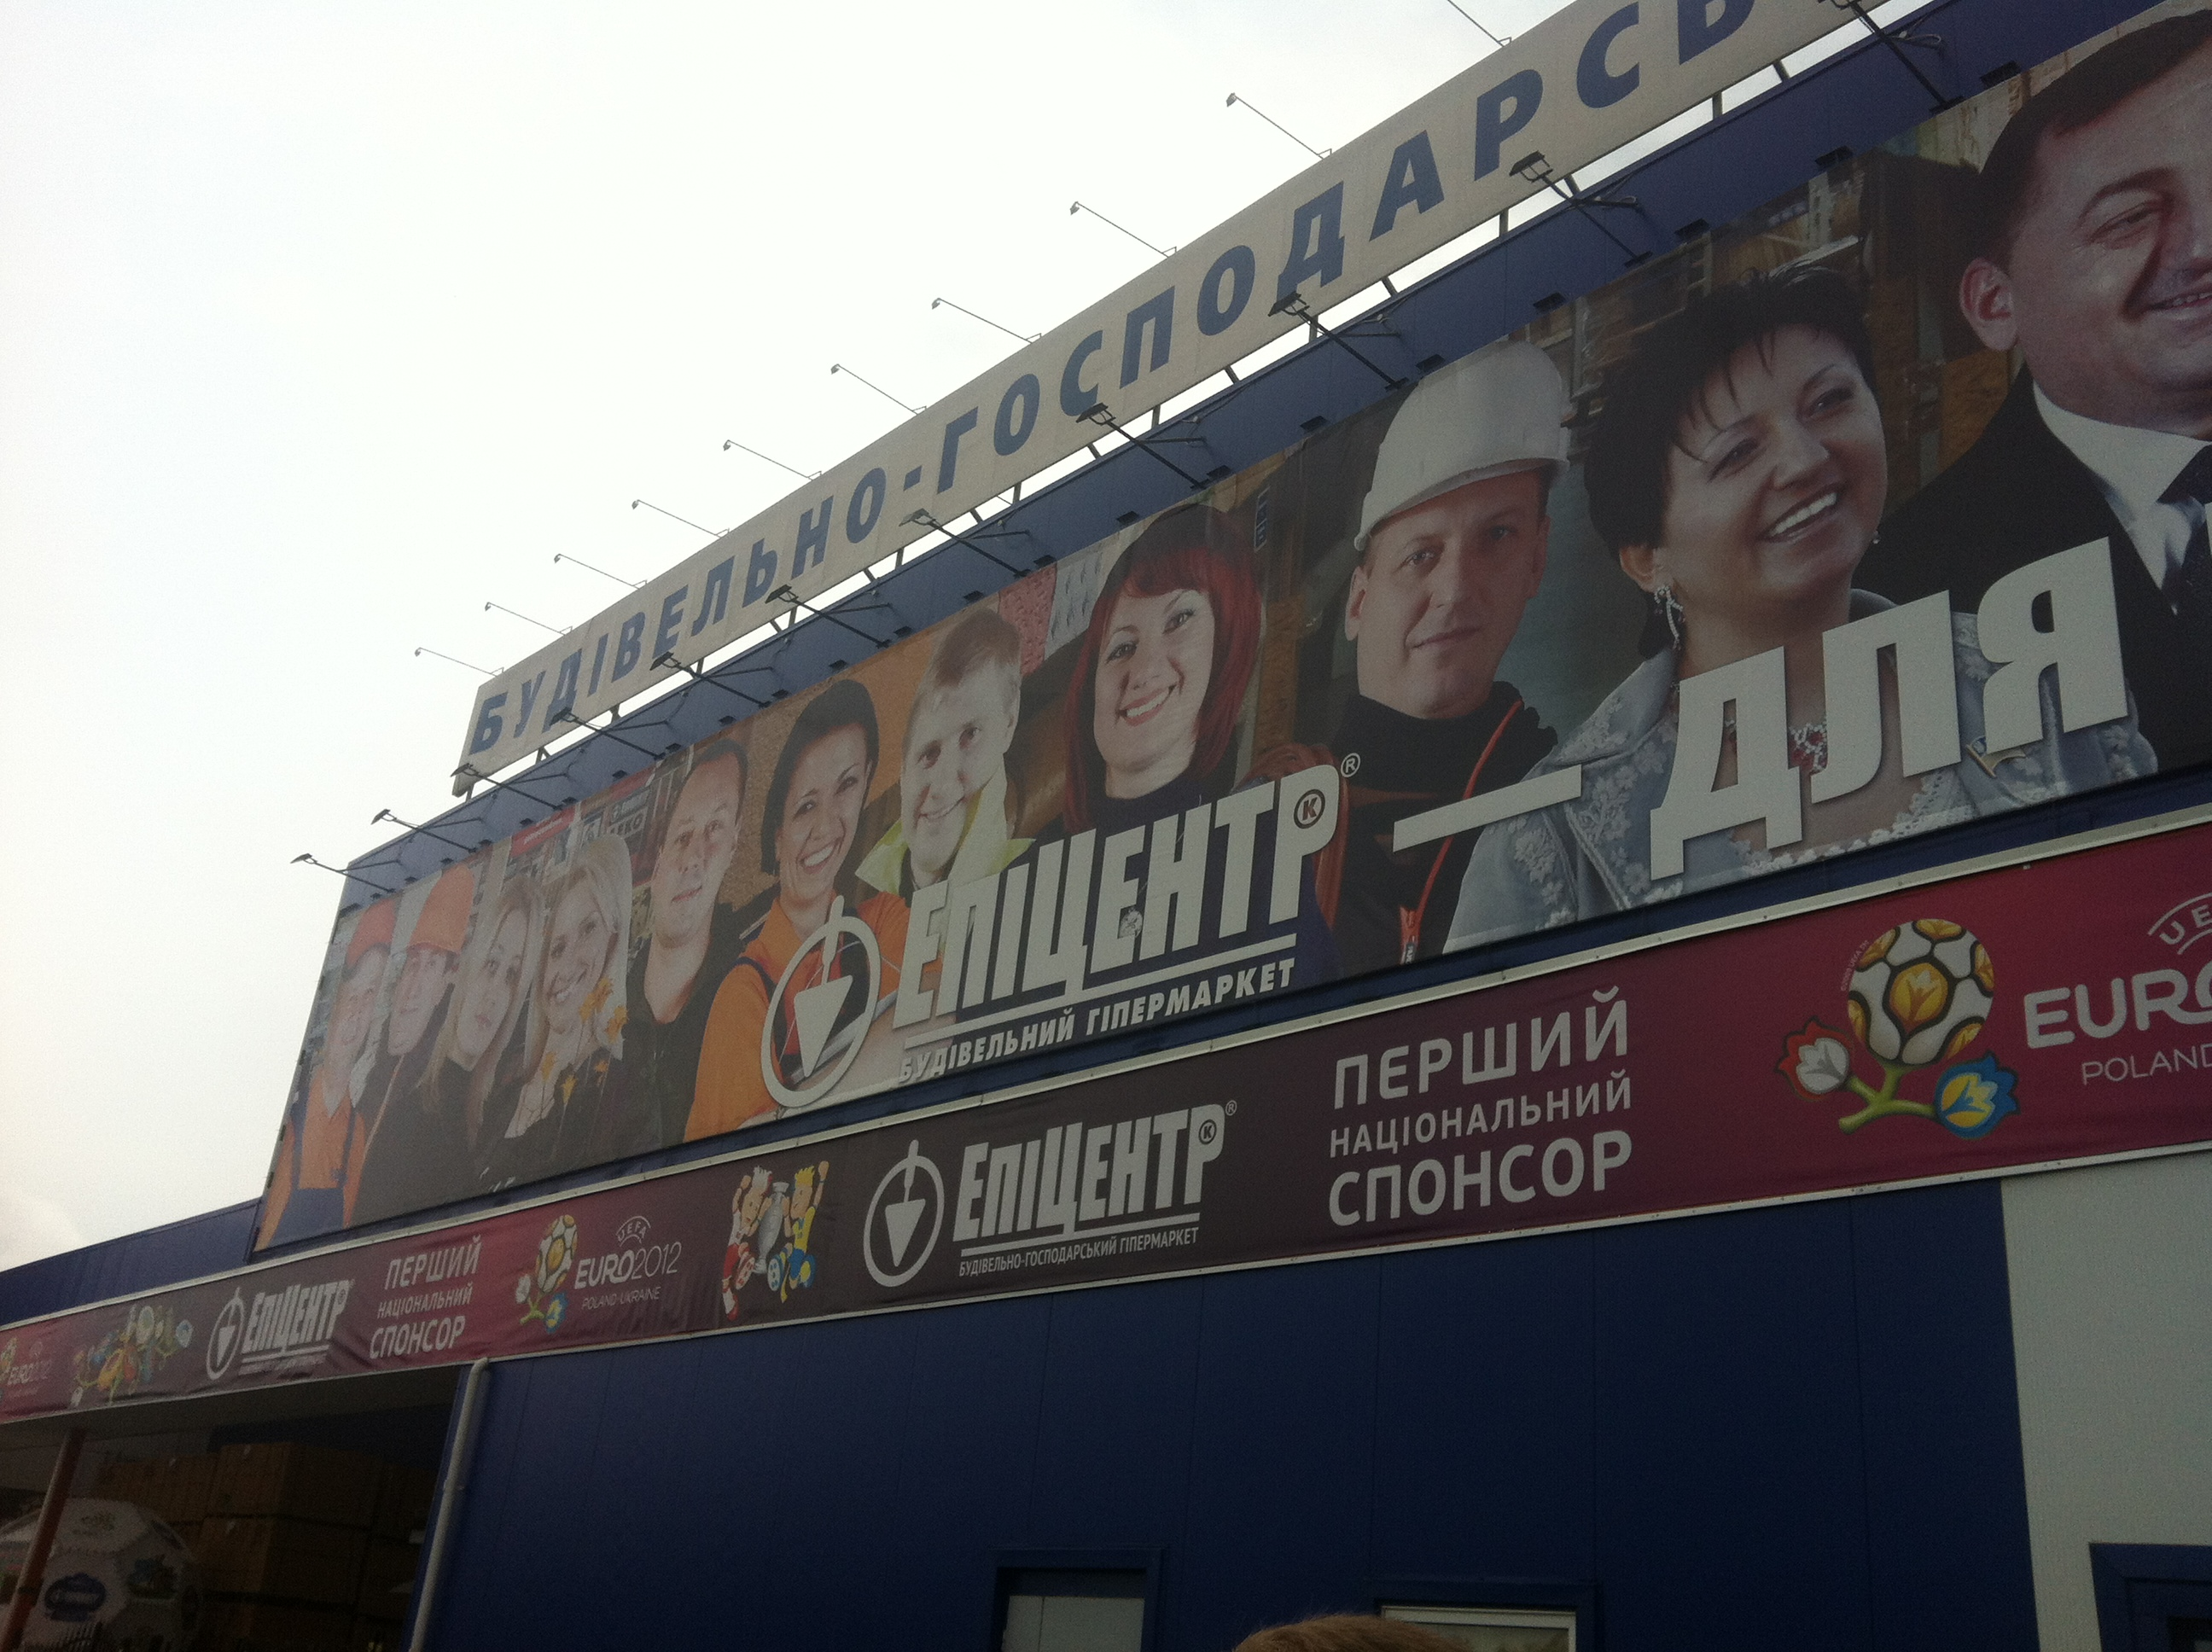 Signage outside of Epicenter, a Ukrainian superstore